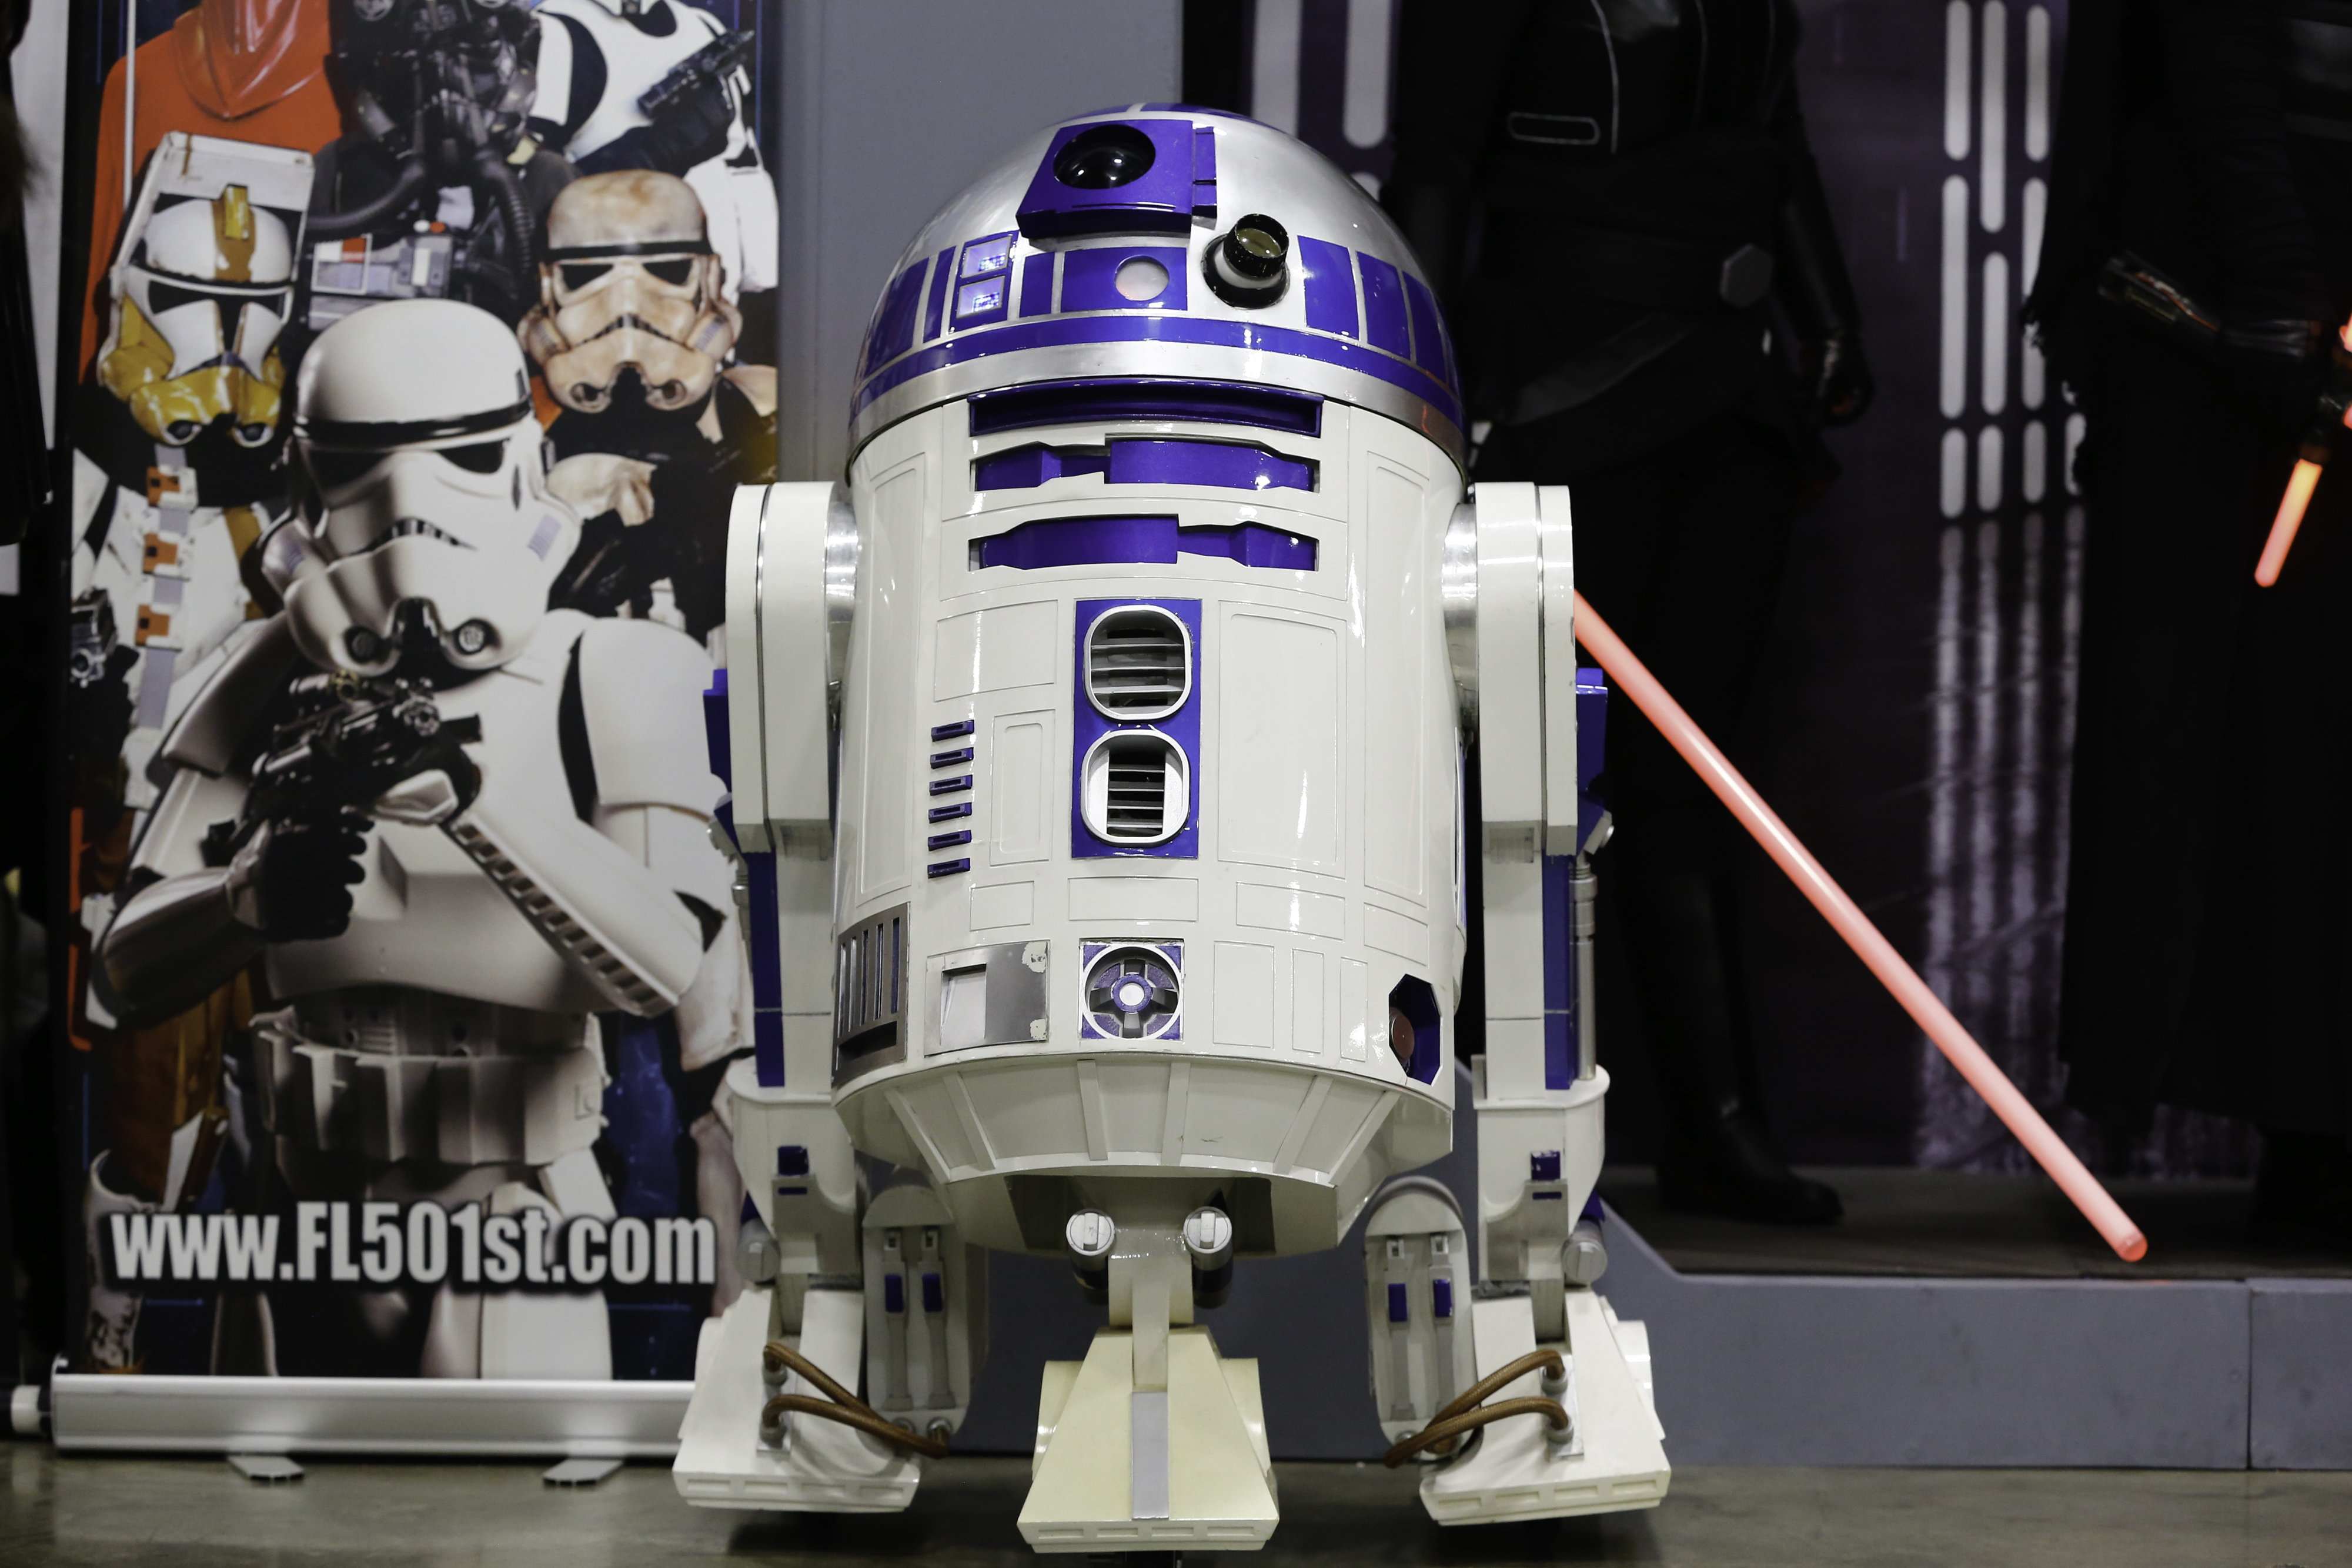 A replica of R2-D2 from Star Wars.